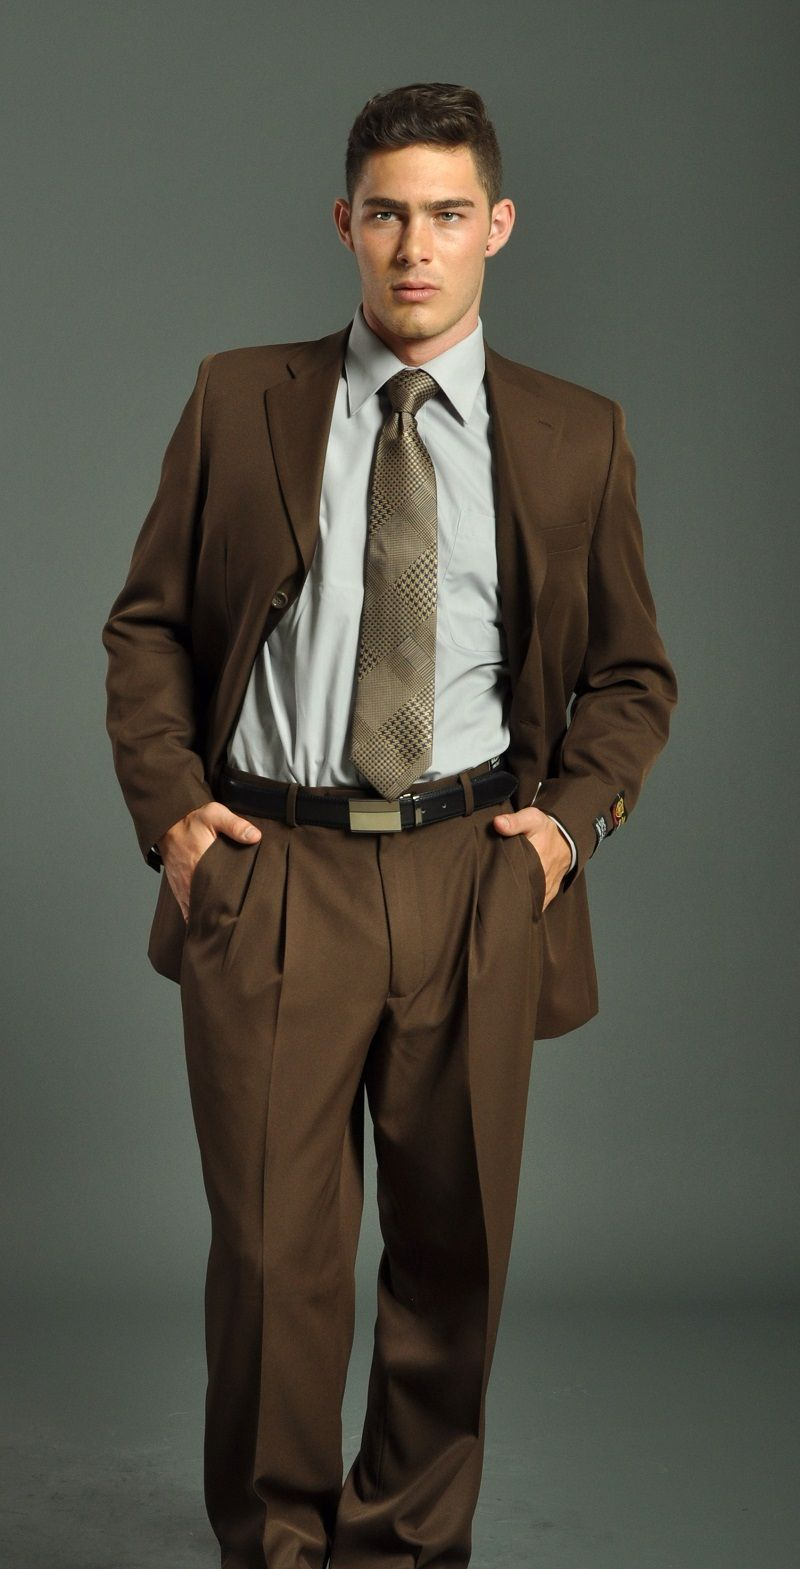 brown suit - Google Search   Crimes of the Heart   Pinterest ...